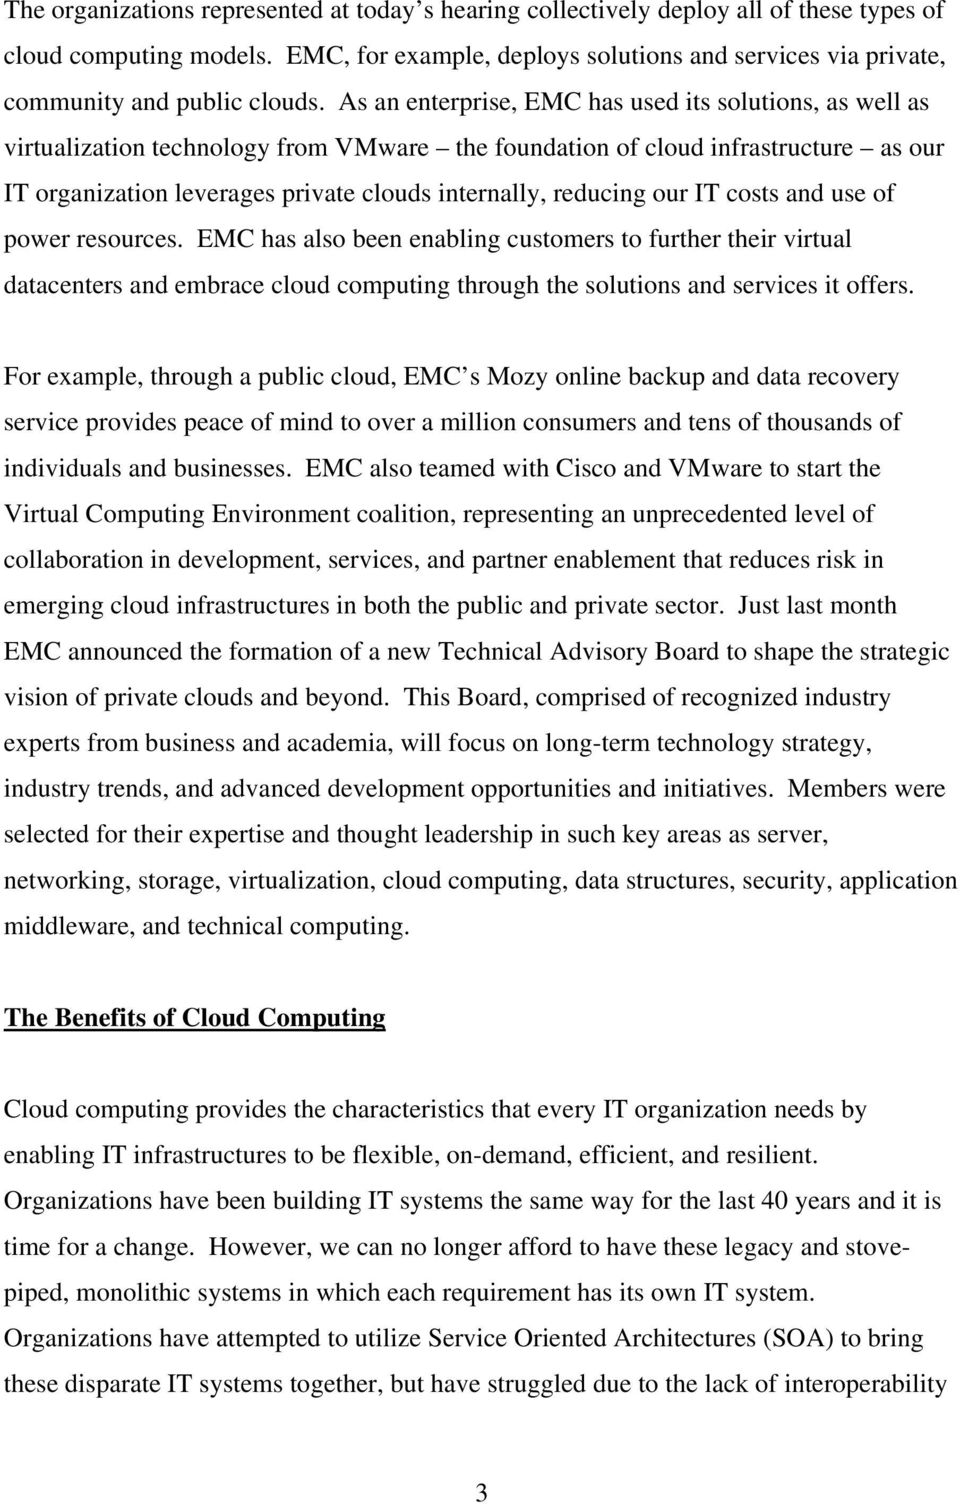 As an enterprise, EMC has used its solutions, as well as virtualization technology from VMware the foundation of cloud infrastructure as our IT organization leverages private clouds internally,